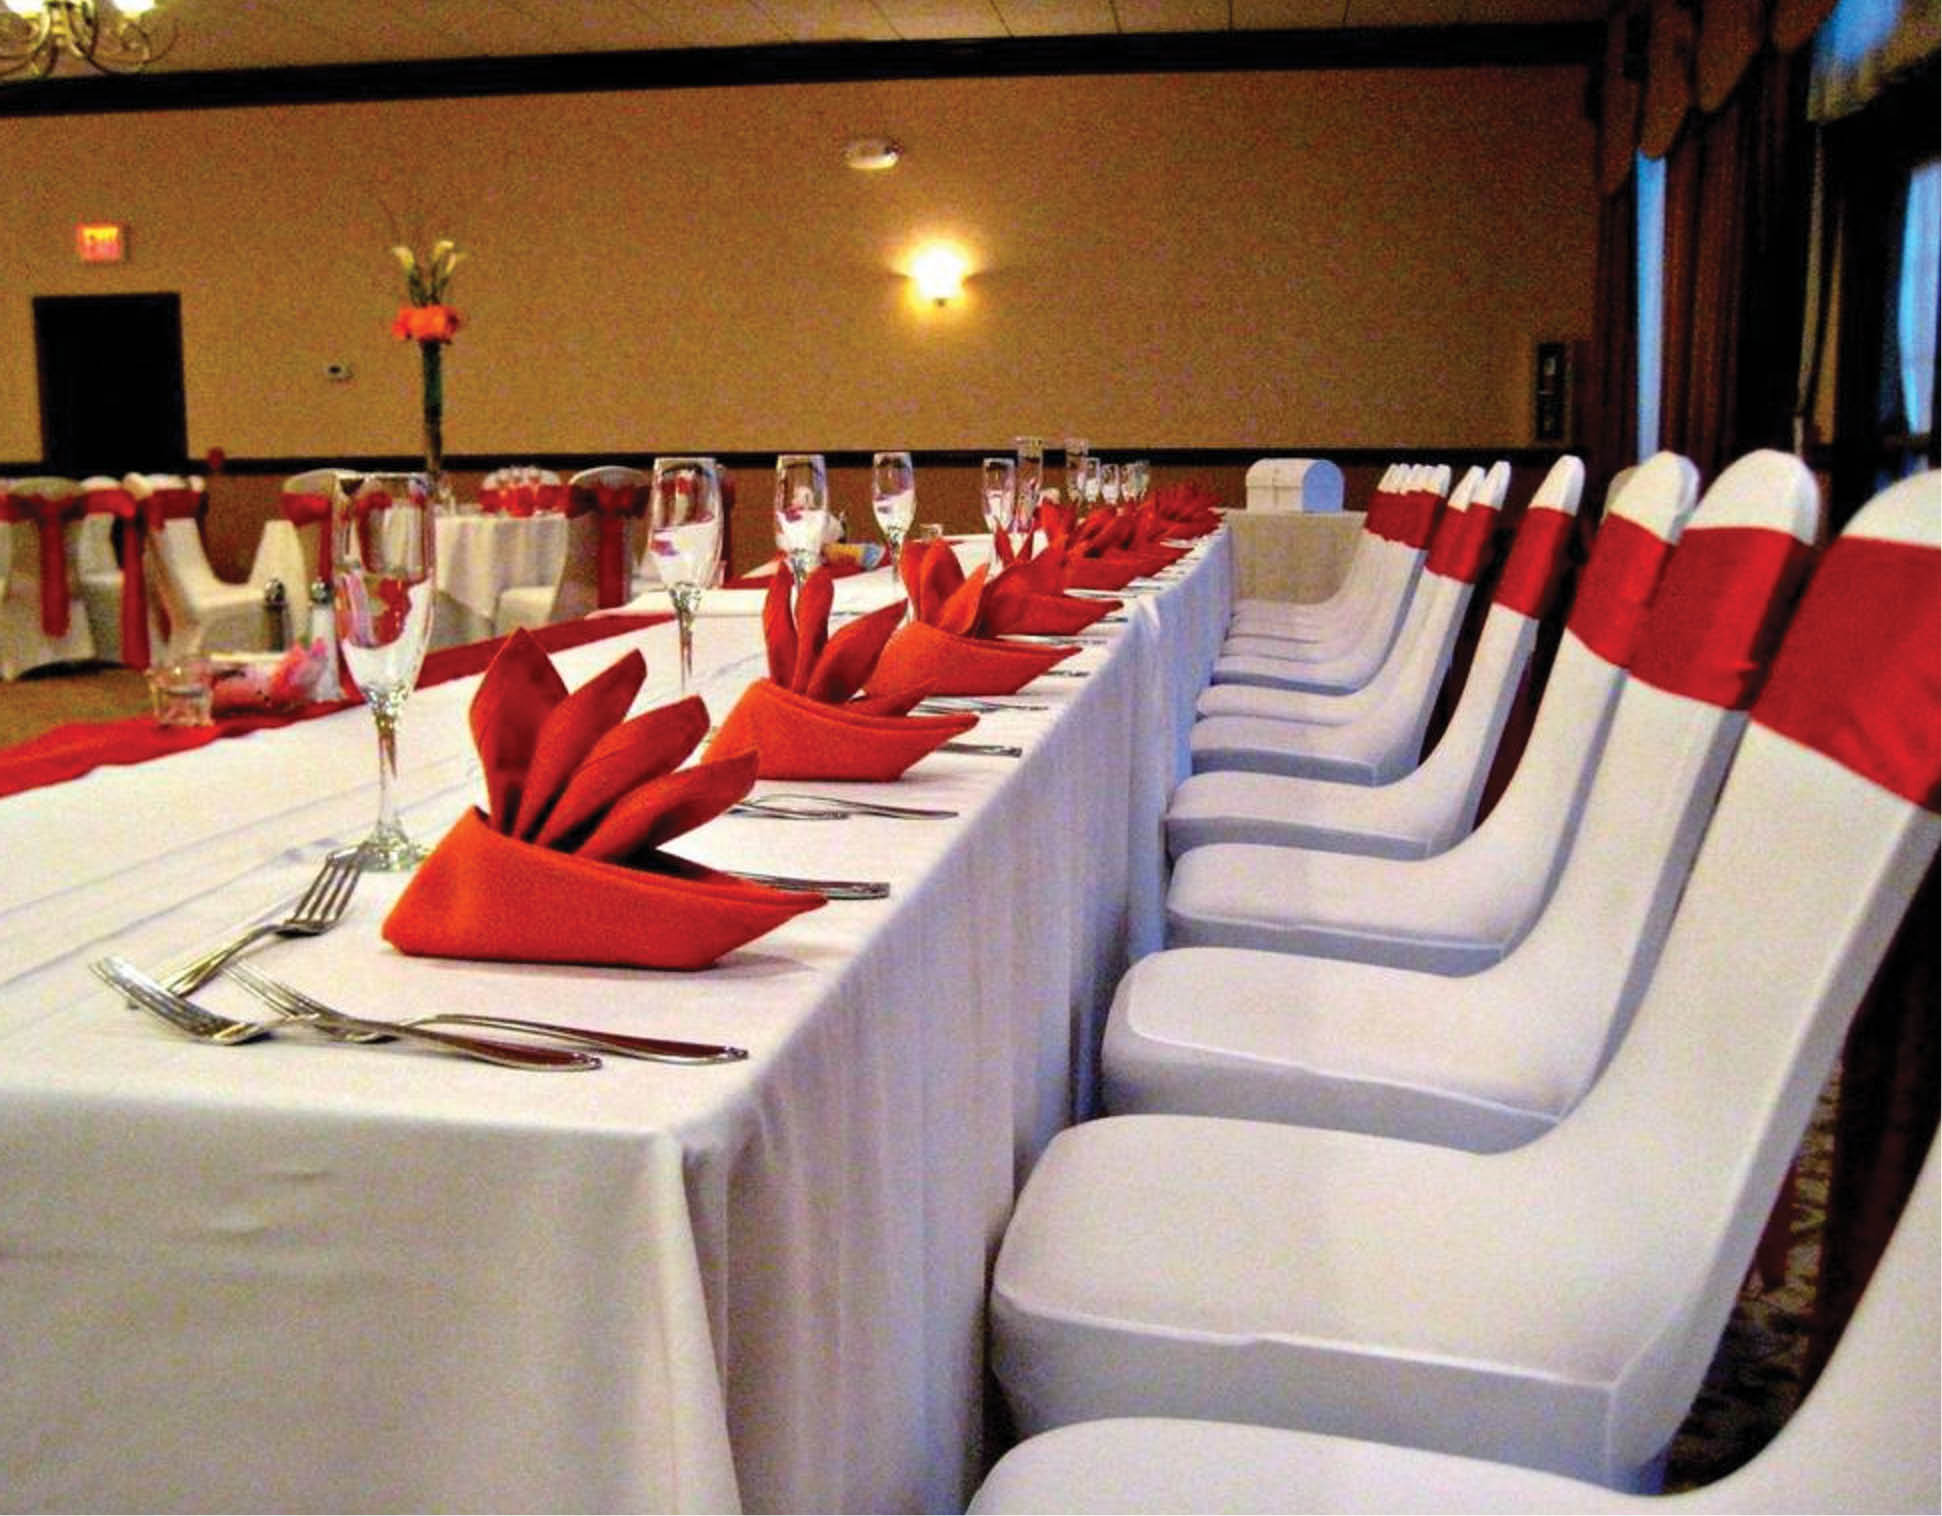 augusta grille, augusta, clarion hotel, delaware, bar, grille, banquet, catering, breakfast buffet